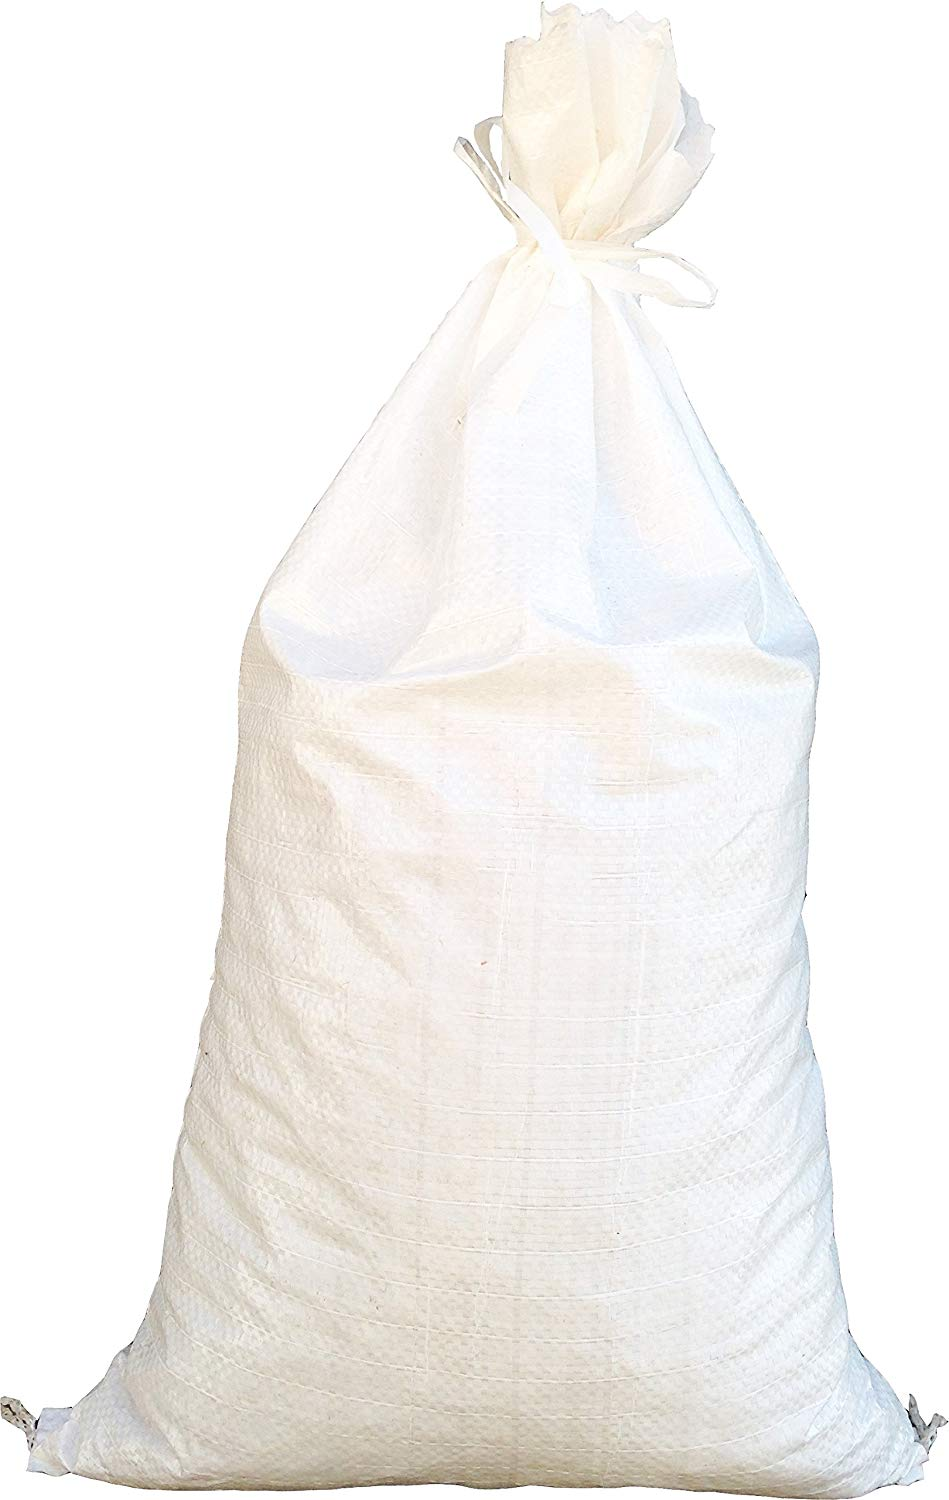 Store Bags by Sandbaggy Tent Sandbags Flood Water Barrier Sand Bag Sandbags for Flooding 200 Bags Size: 18 x 30 Water Curb Color: White